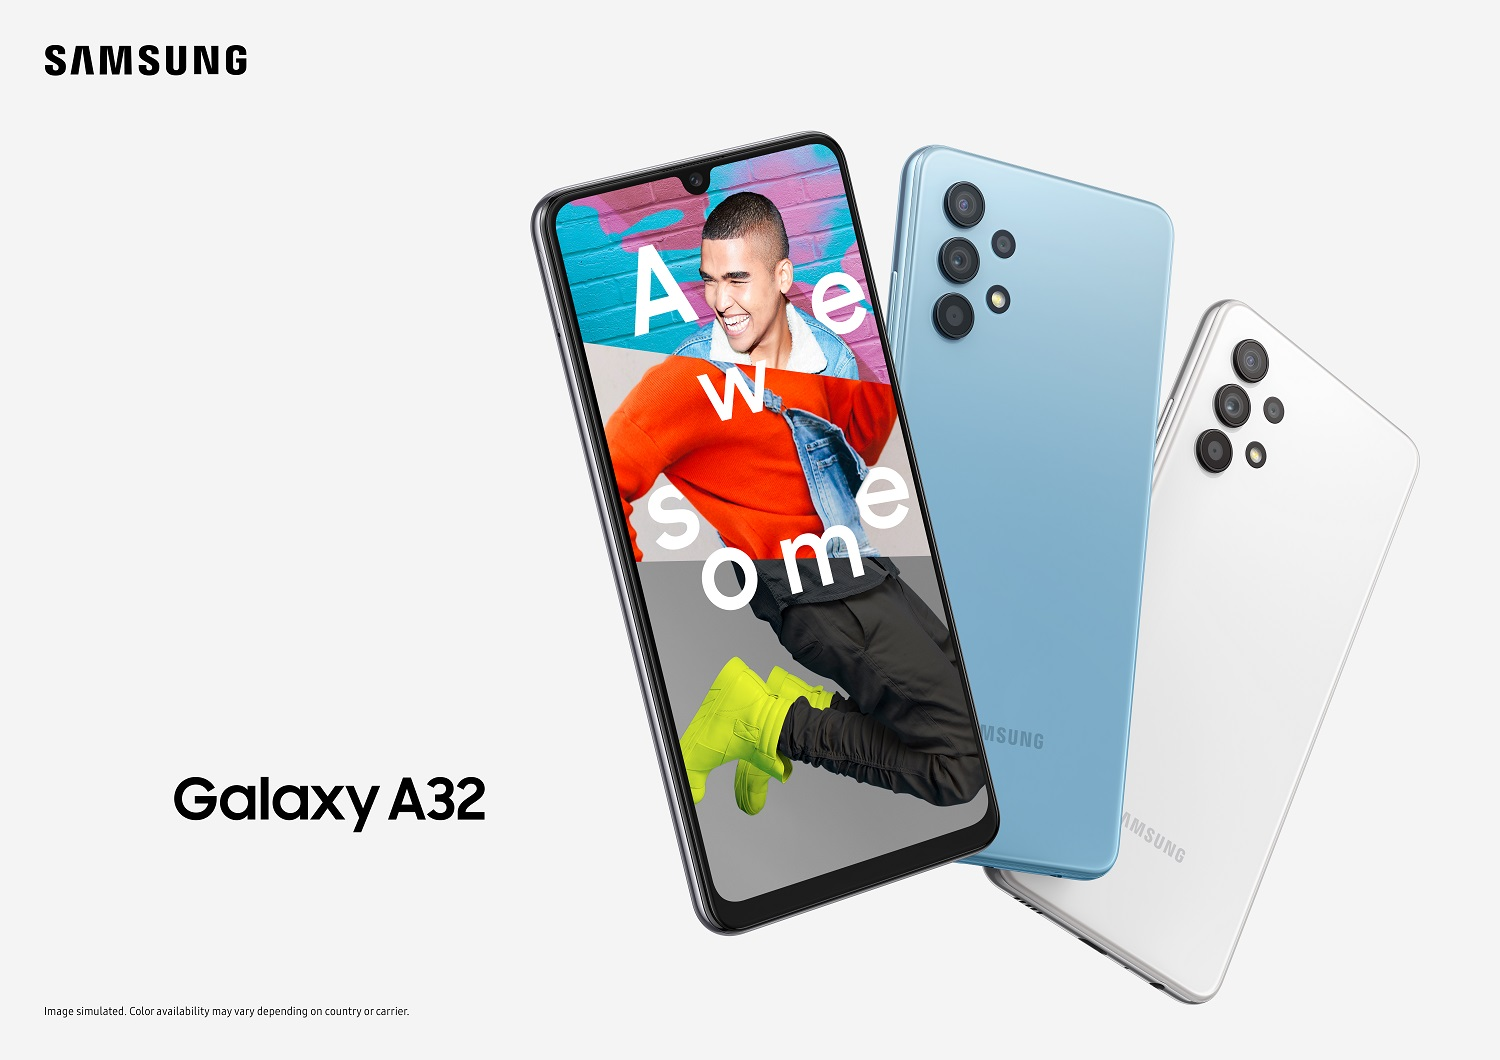 Introducing The New Samsung Galaxy A32 – Experience a Whole Day of Fun Content Streaming